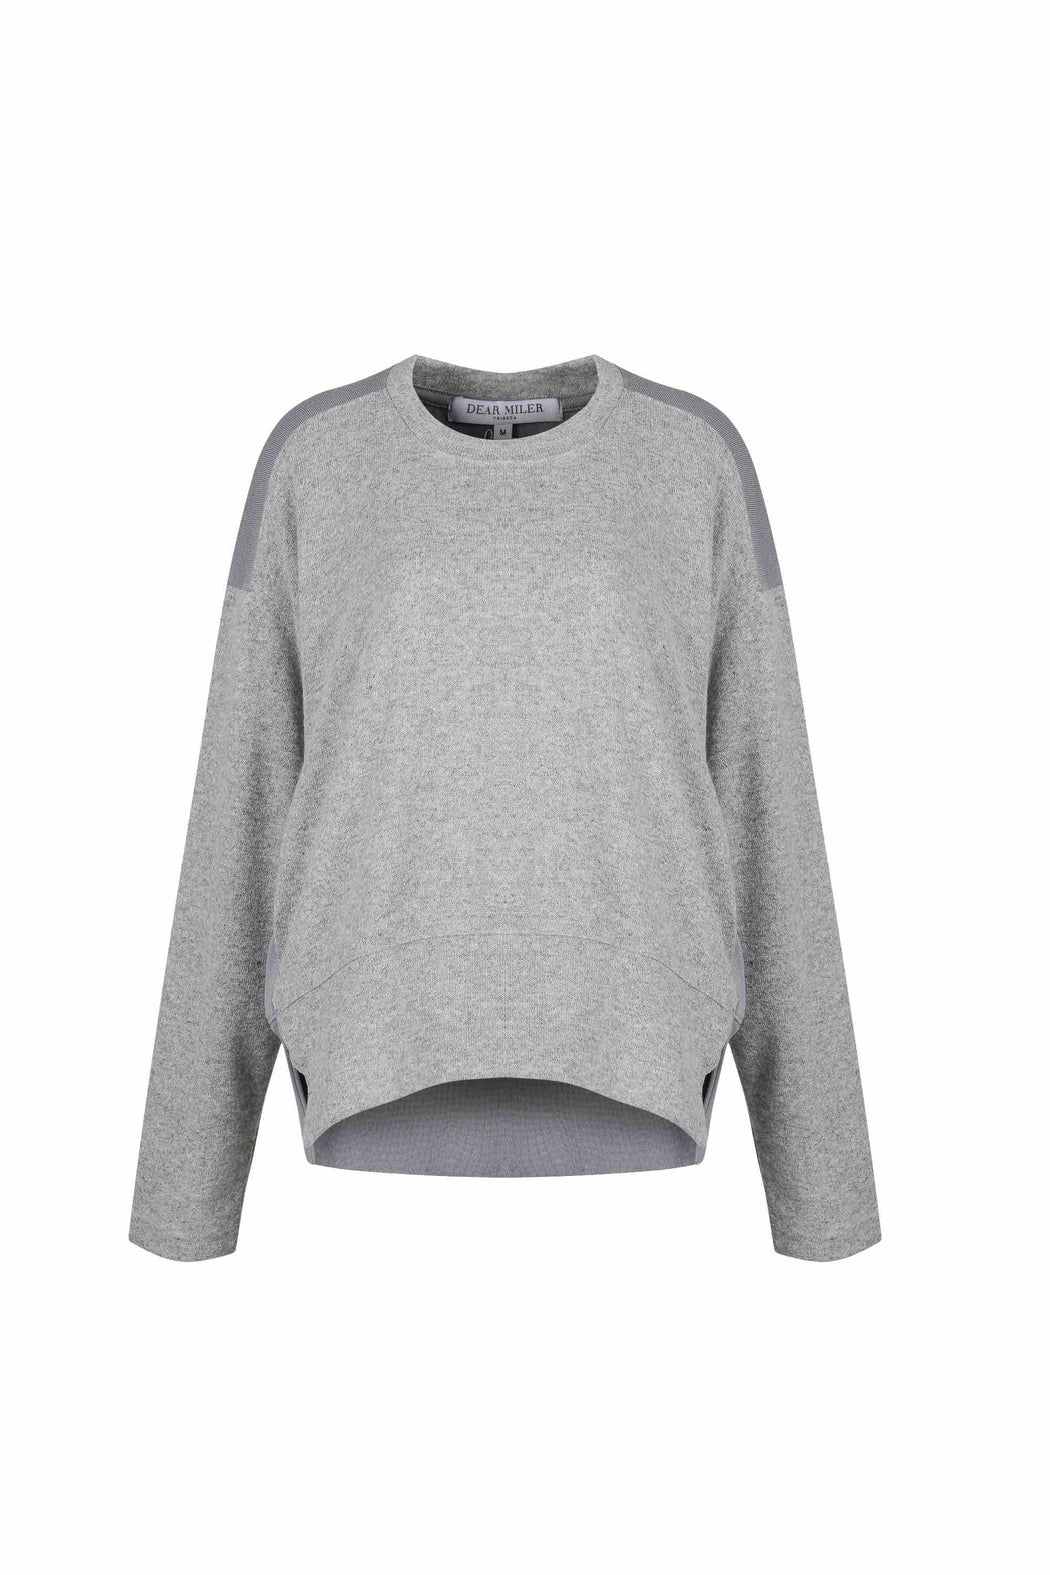 Front view of Women Fabric Block Sweater, made with Organic Cotton and wool blends in grey/melange grey